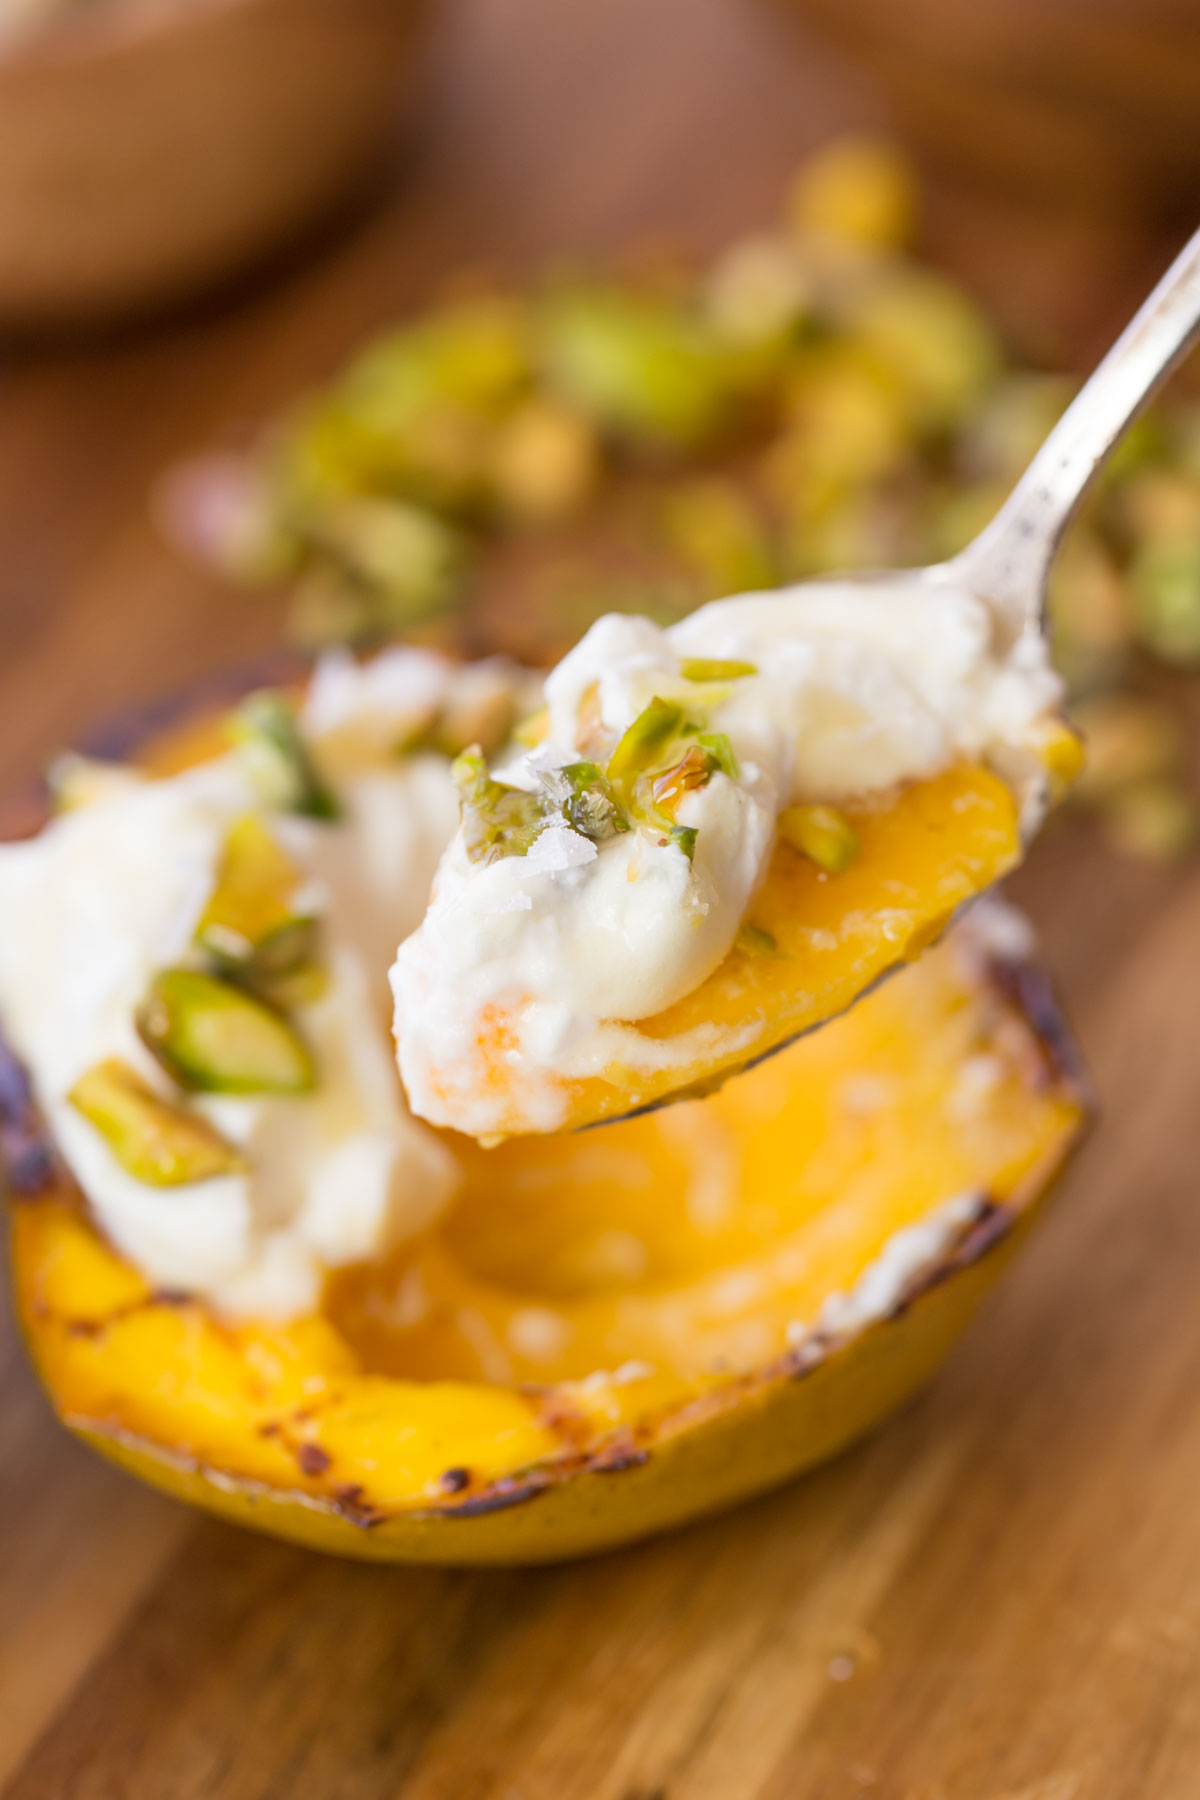 Grilled Mango With Honey Ricotta Whipped Cream with spoonful in the foreground.